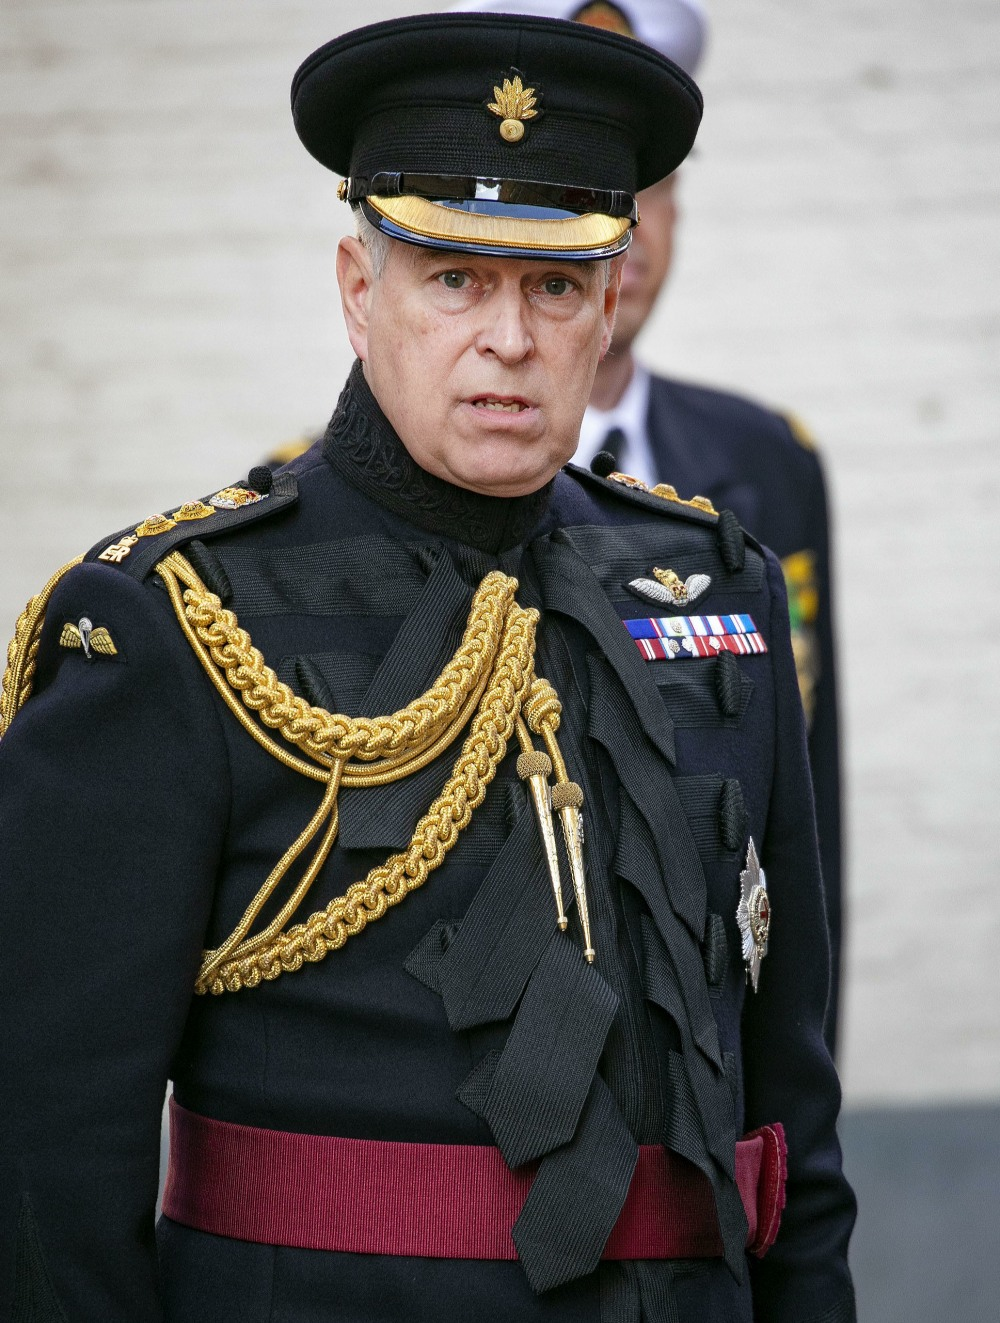 It is 'unlikely' that Prince Andrew will ever appear on a Remembrance Day again